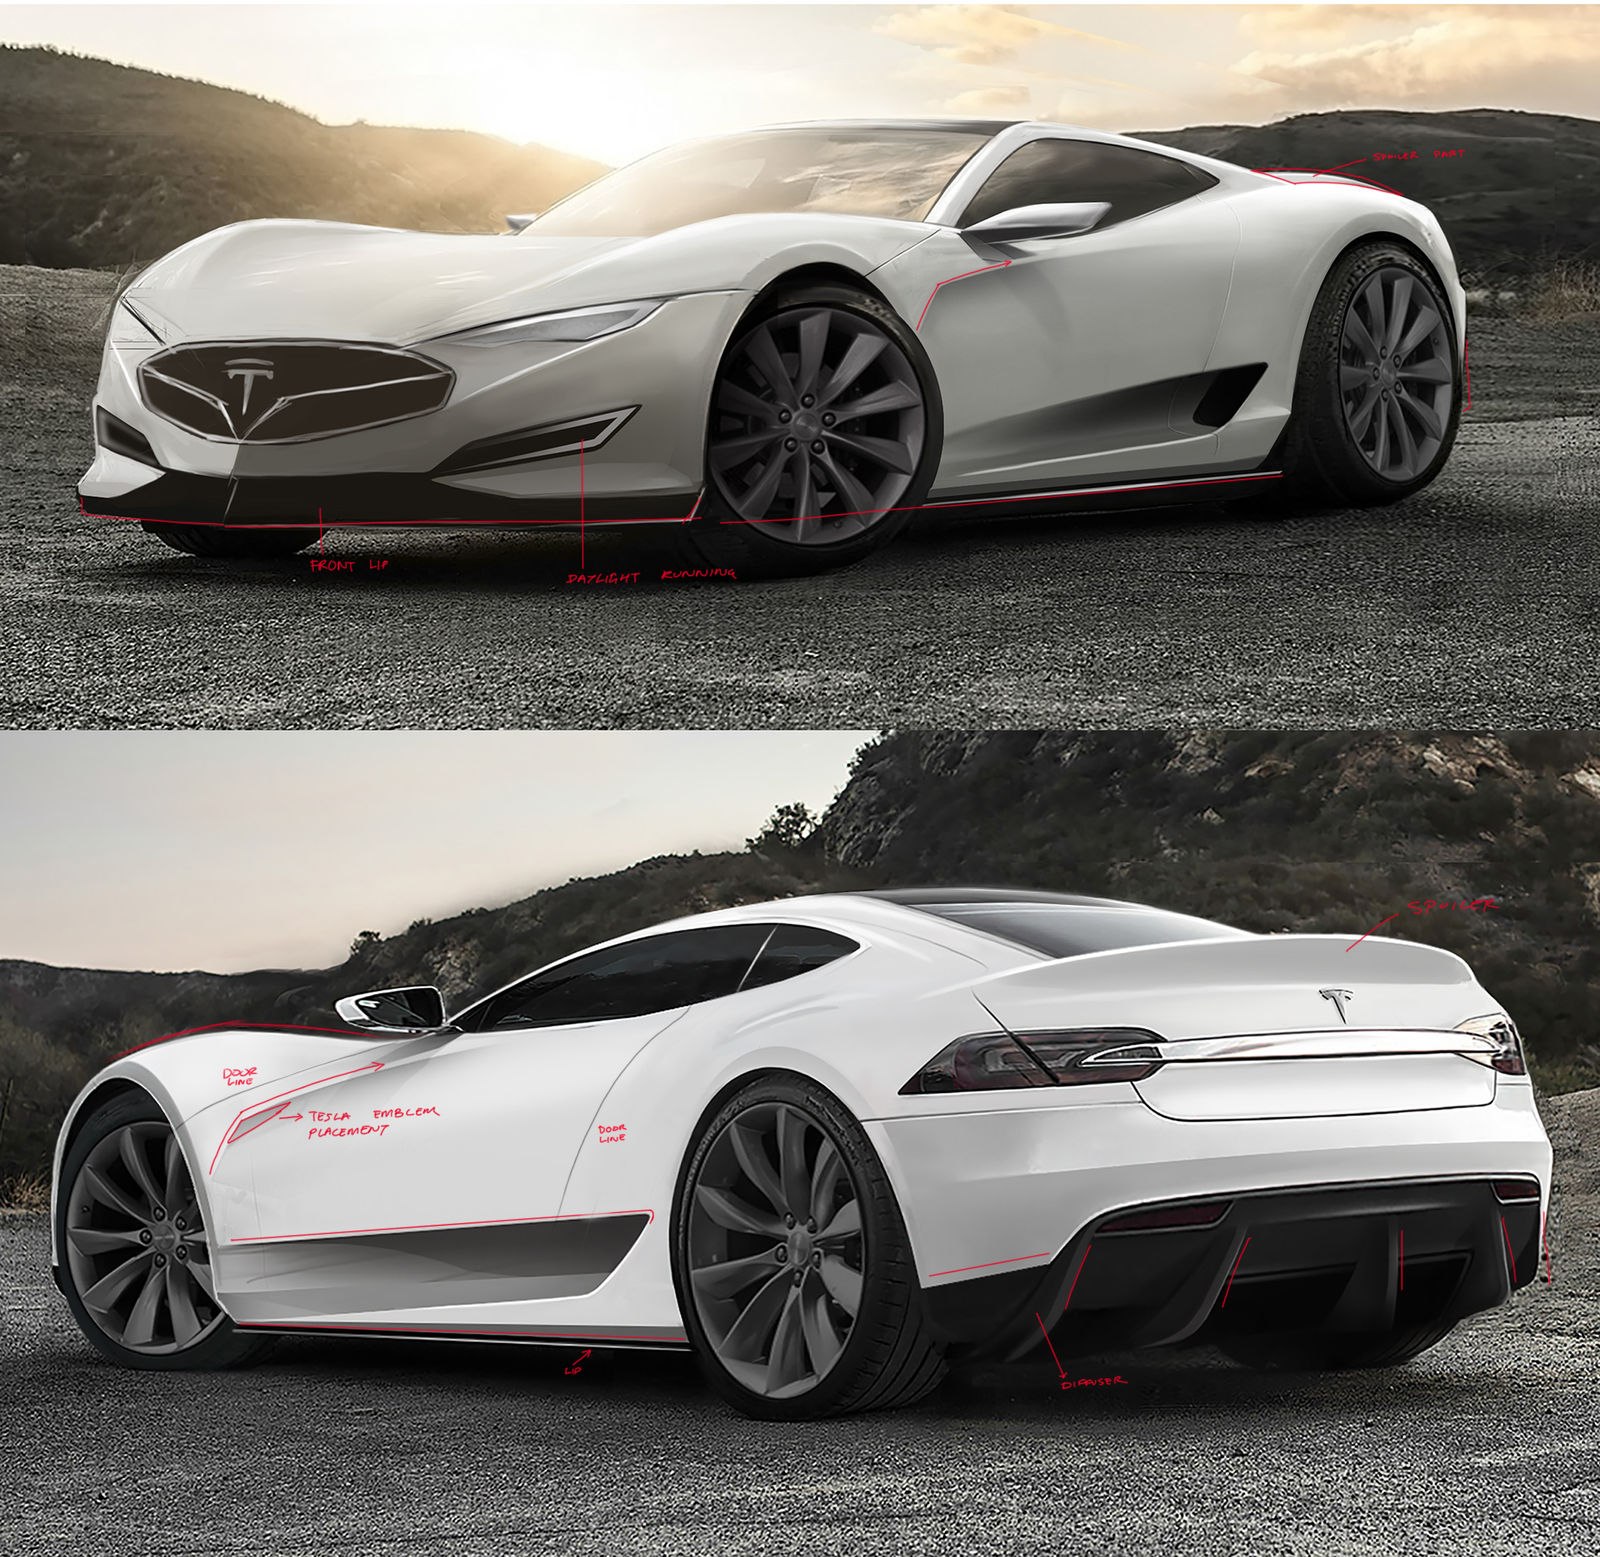 2016 tesla model r hypercar concept  design sketches